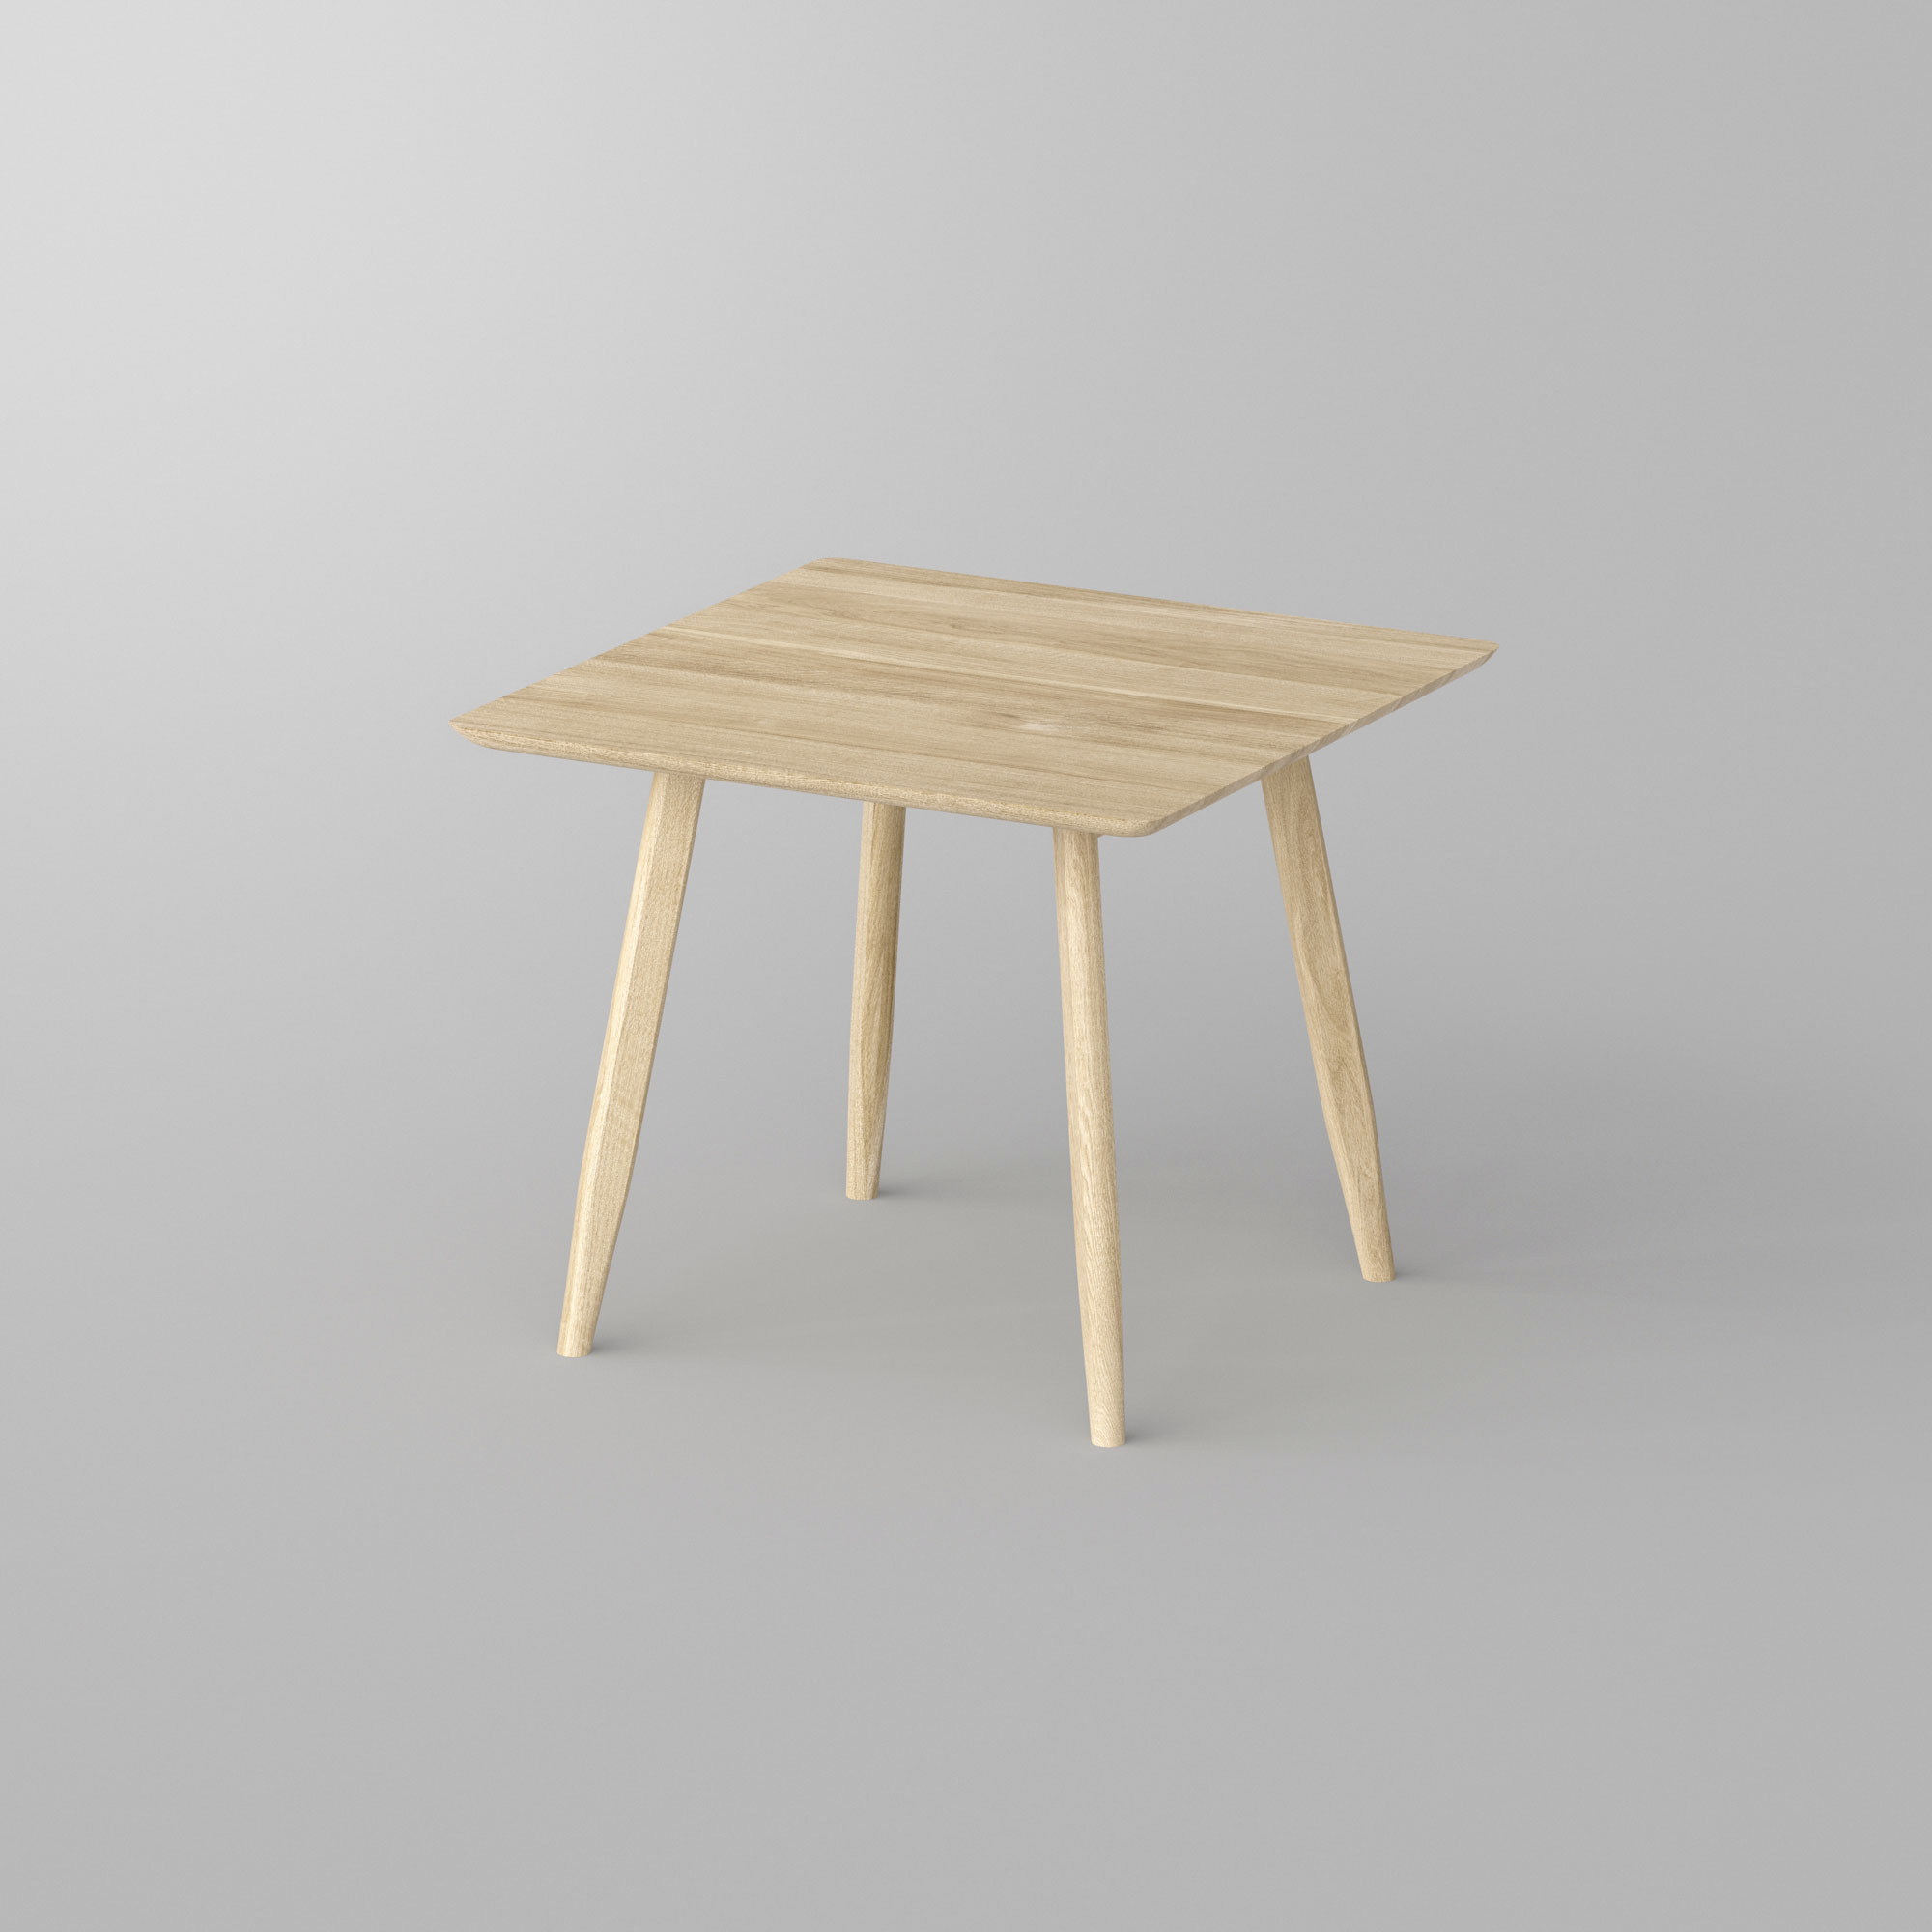 Designer Dining Table Wood AETAS BASIC 3 vitamin-design custom made in solid wood by vitamin design